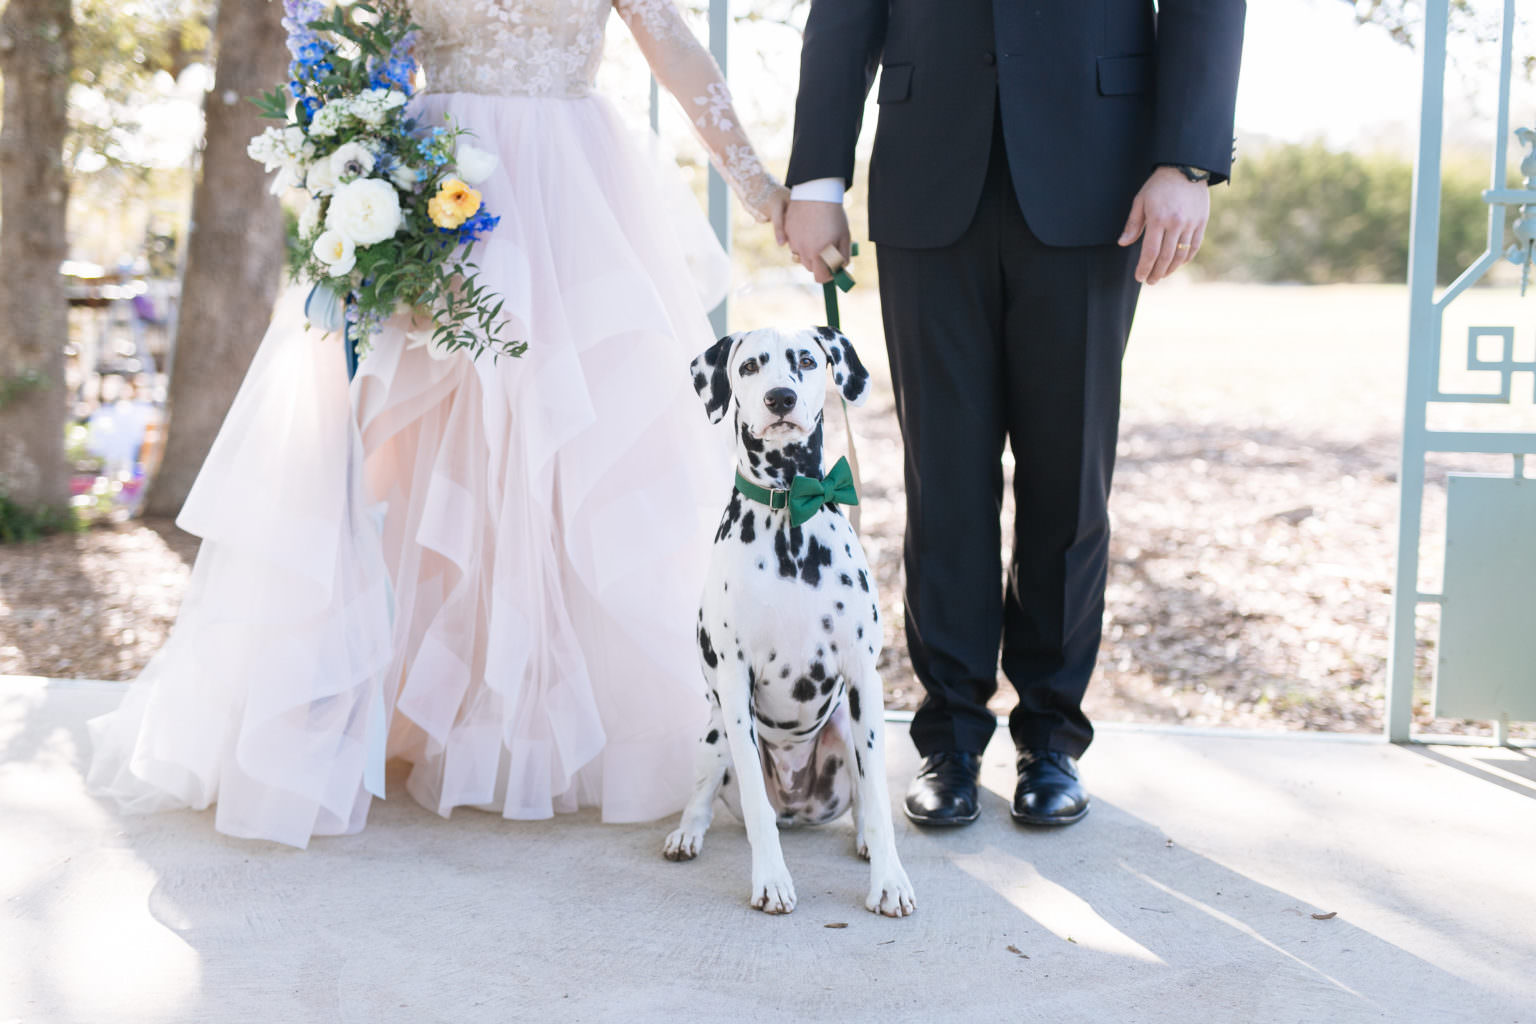 Wedding couple with black and white spotted dog